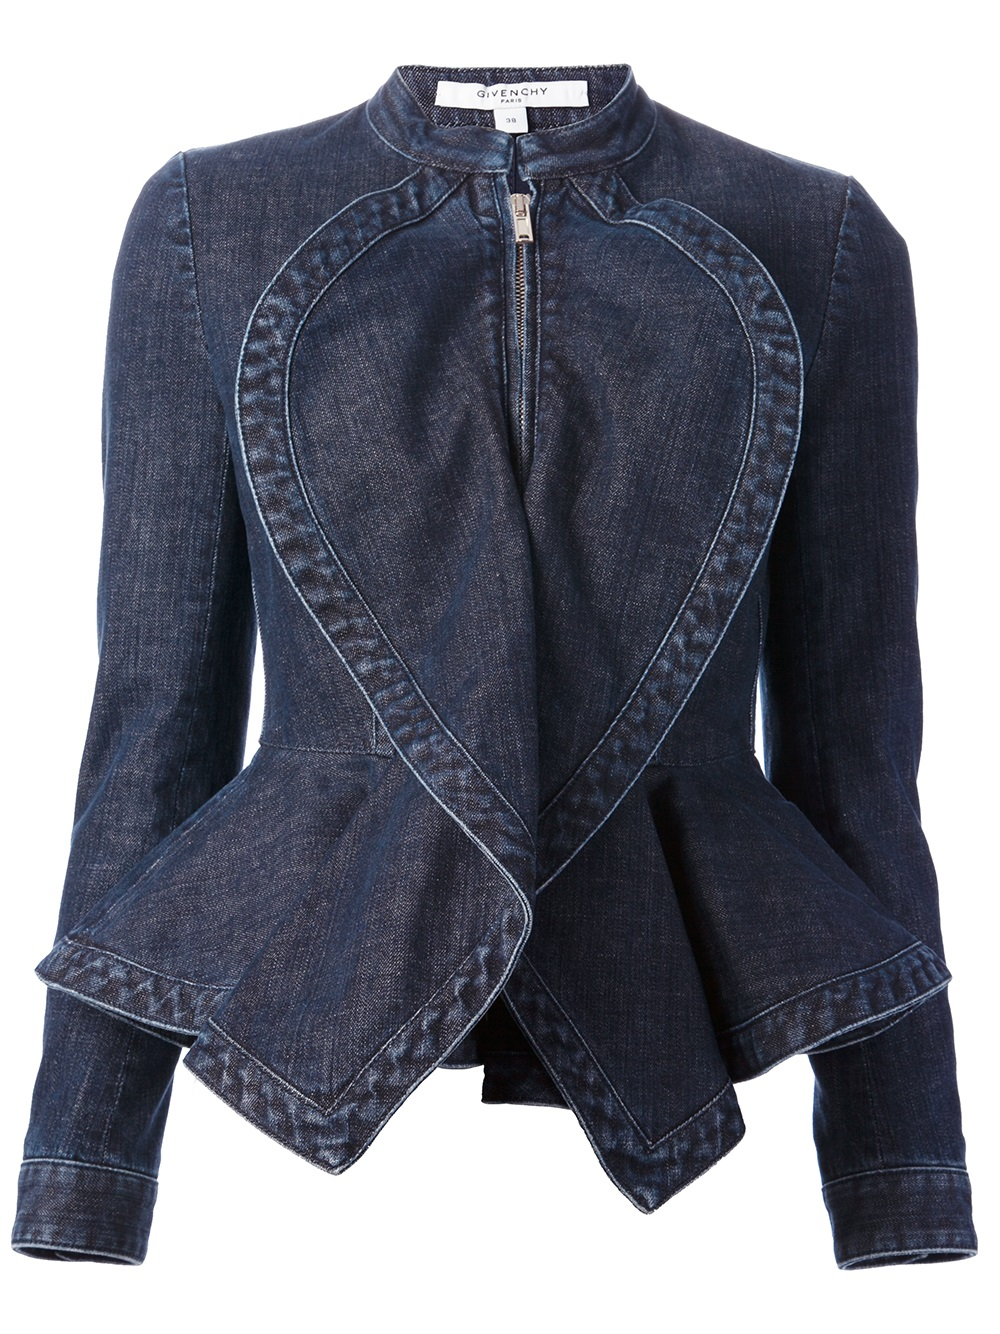 Givenchy Denim Peplum Jacket in Blue